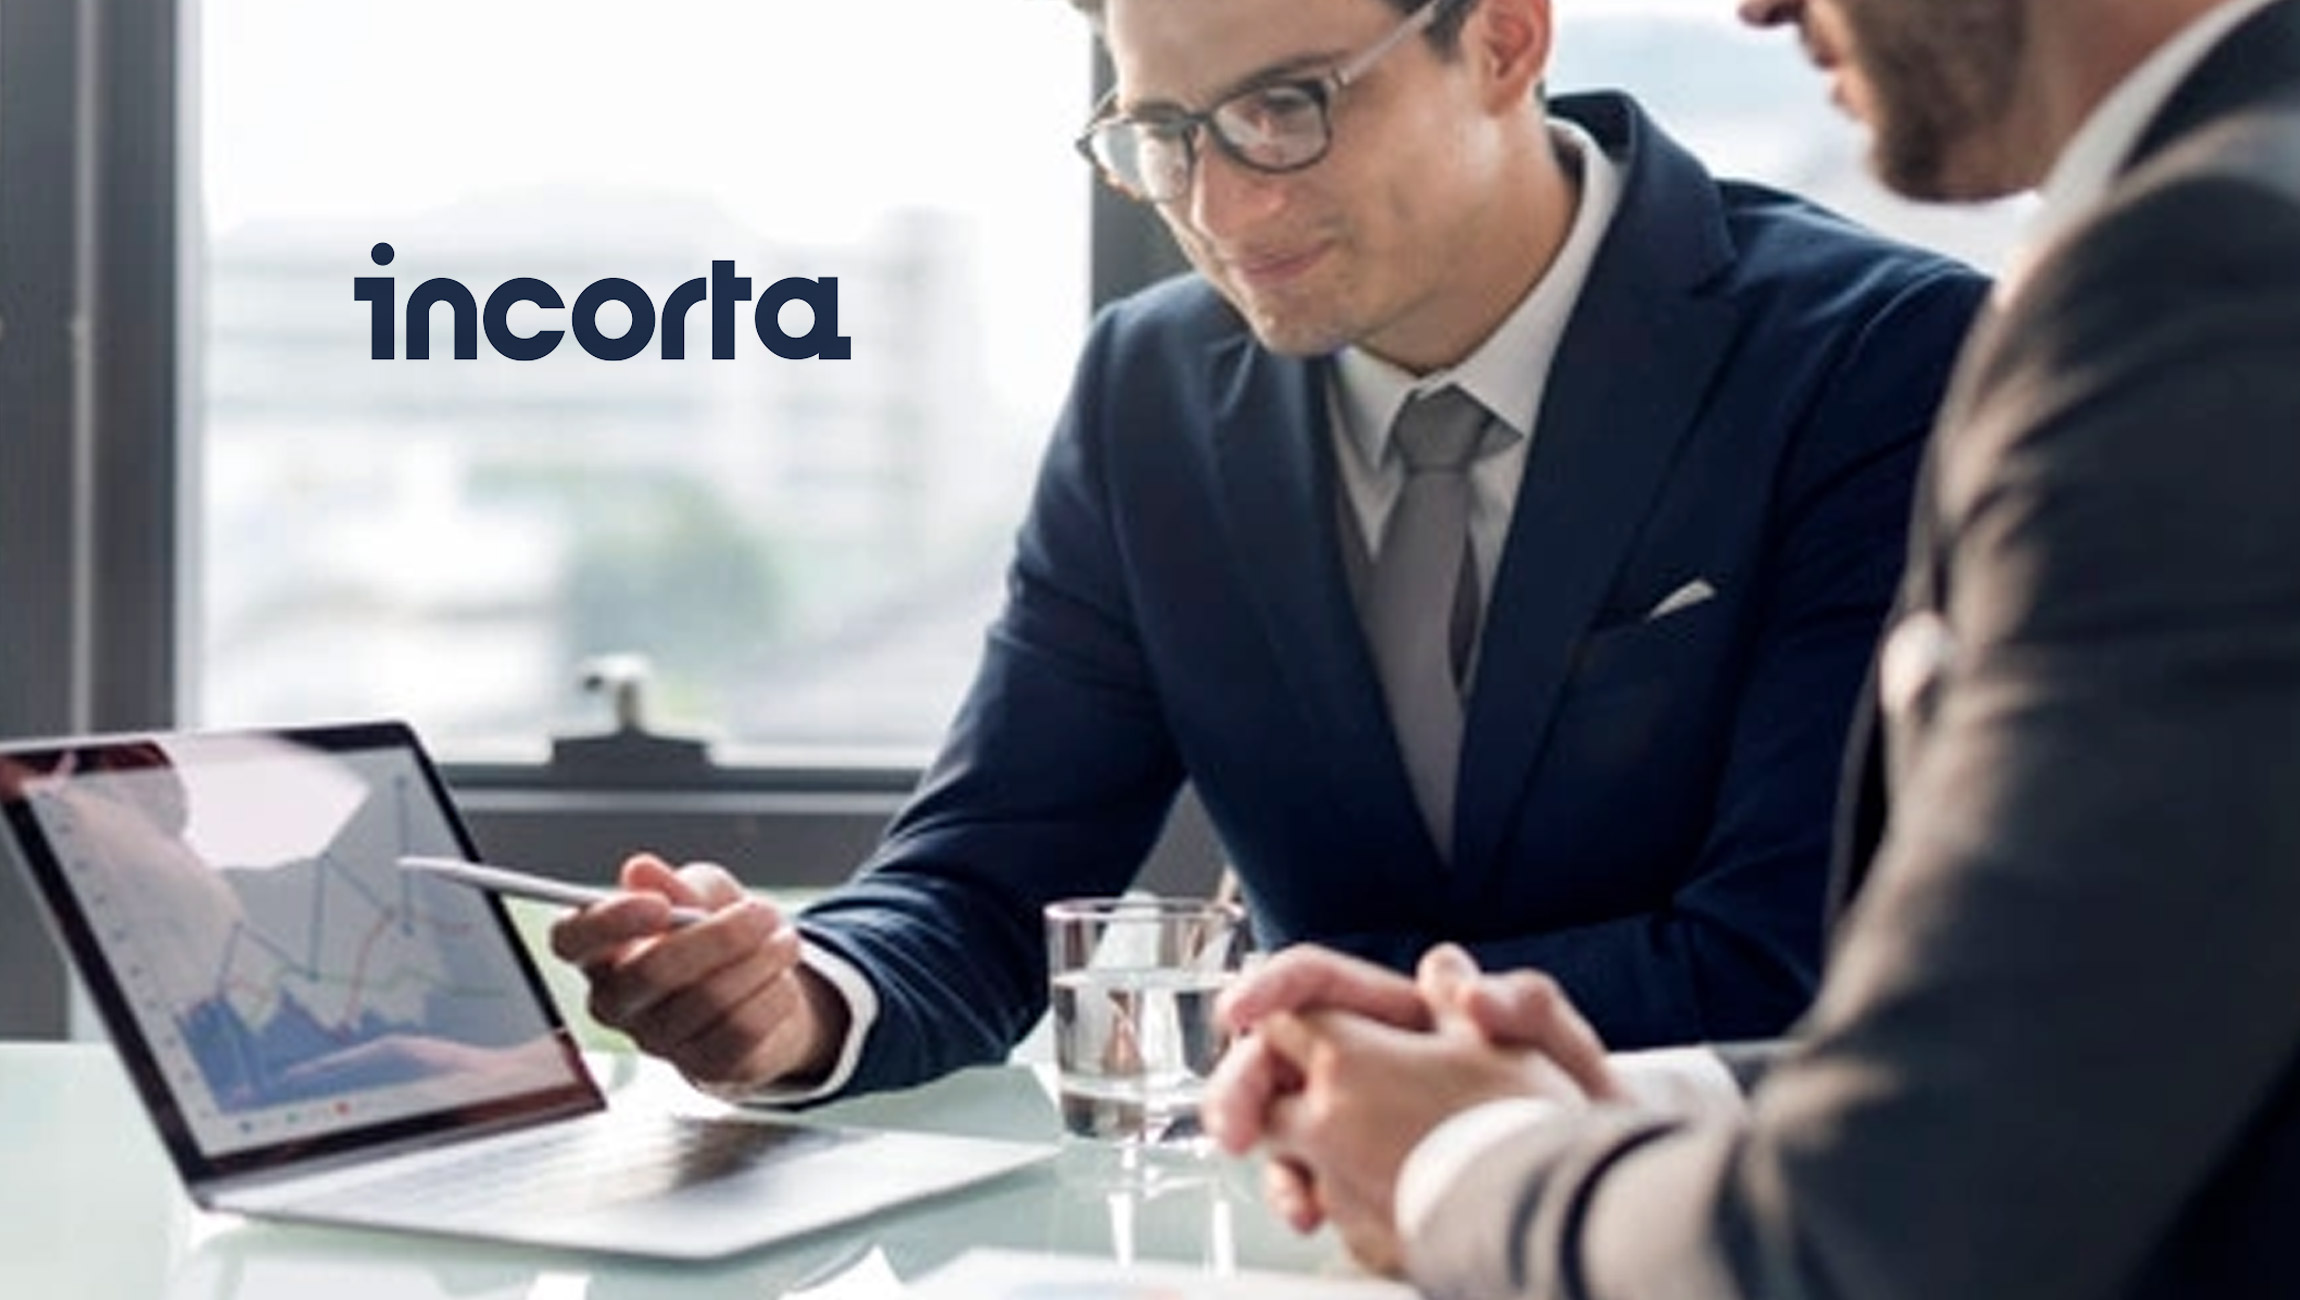 """Incorta Named a 2021 """"Cool Vendor"""" in Analytics and Data Science by Gartner 1"""